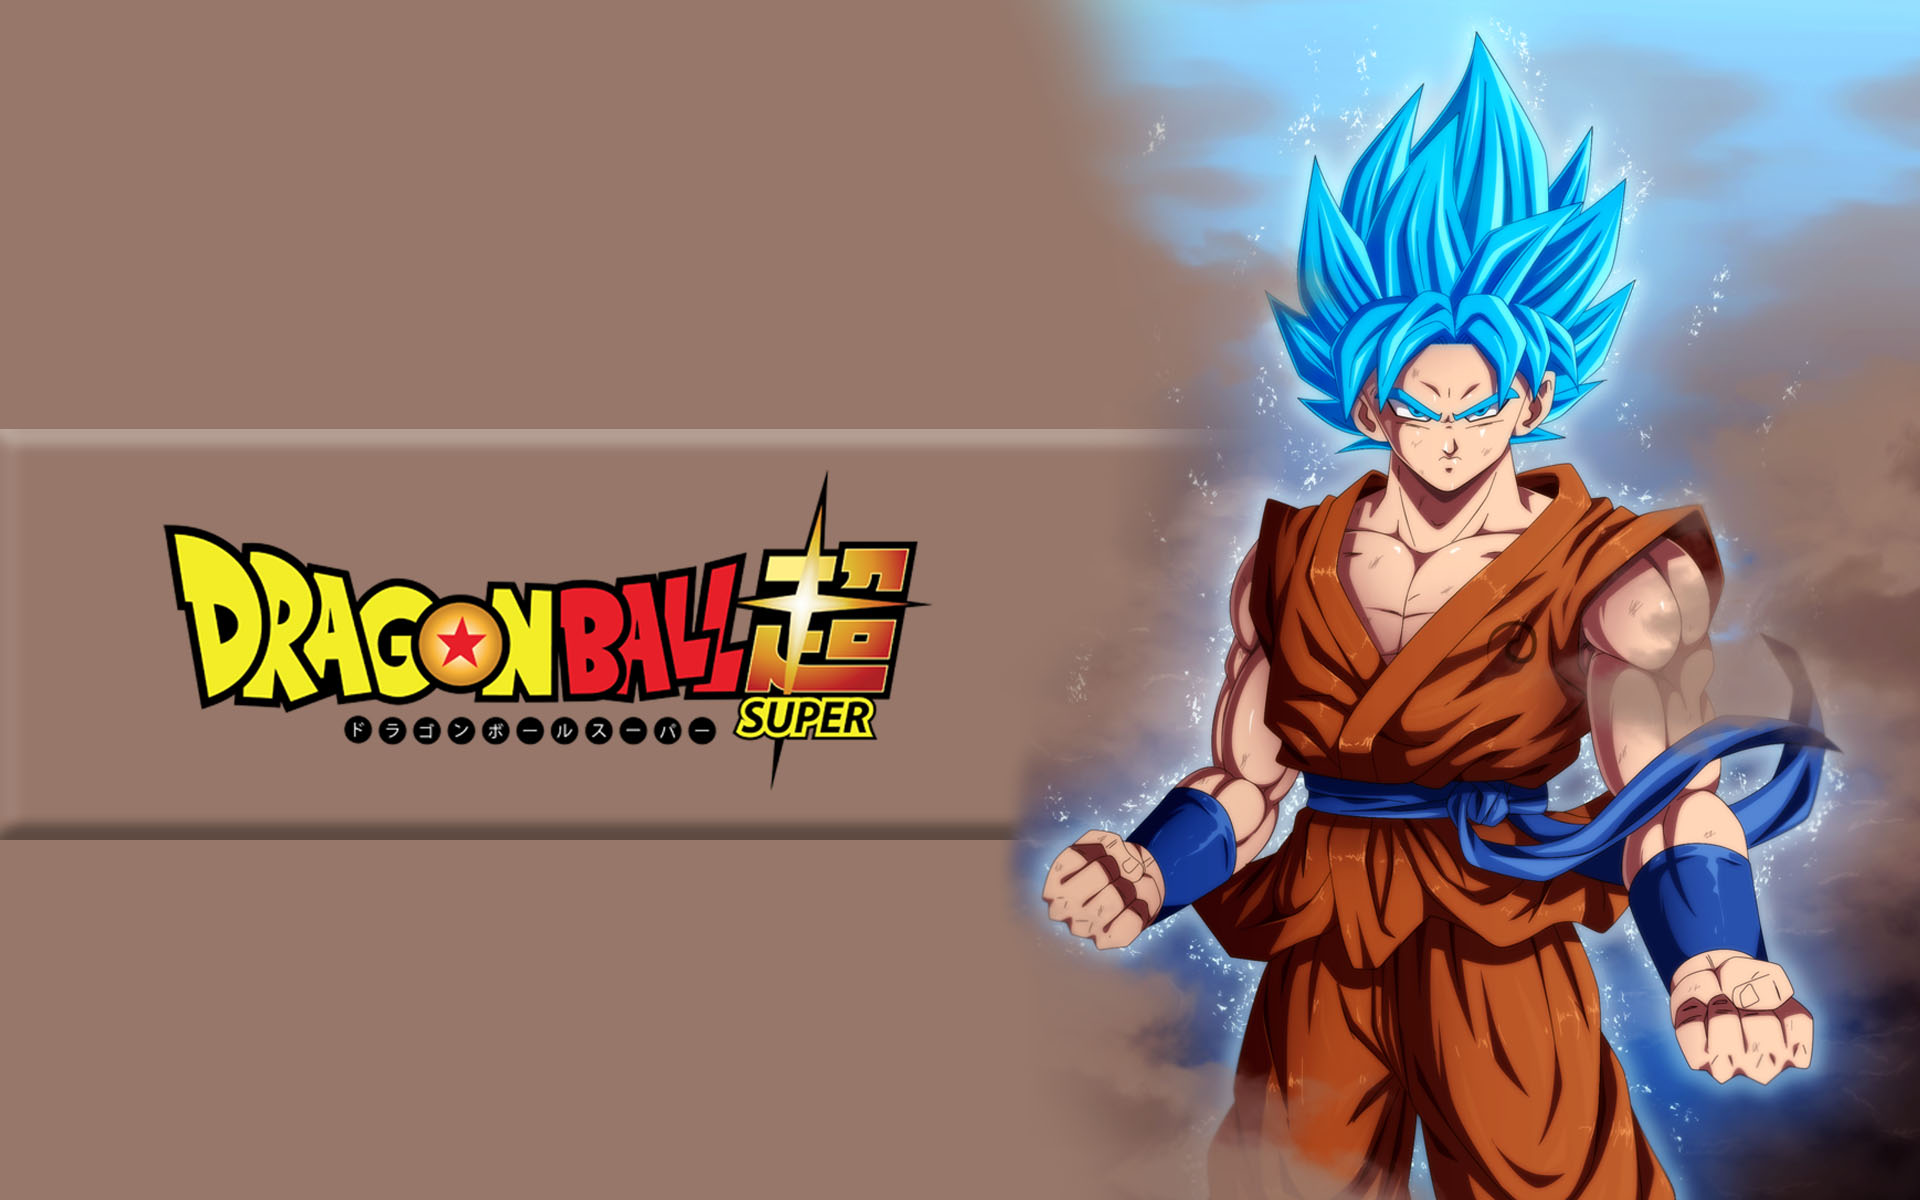 Dragon Ball Super Wallpaper - WallpaperSafari